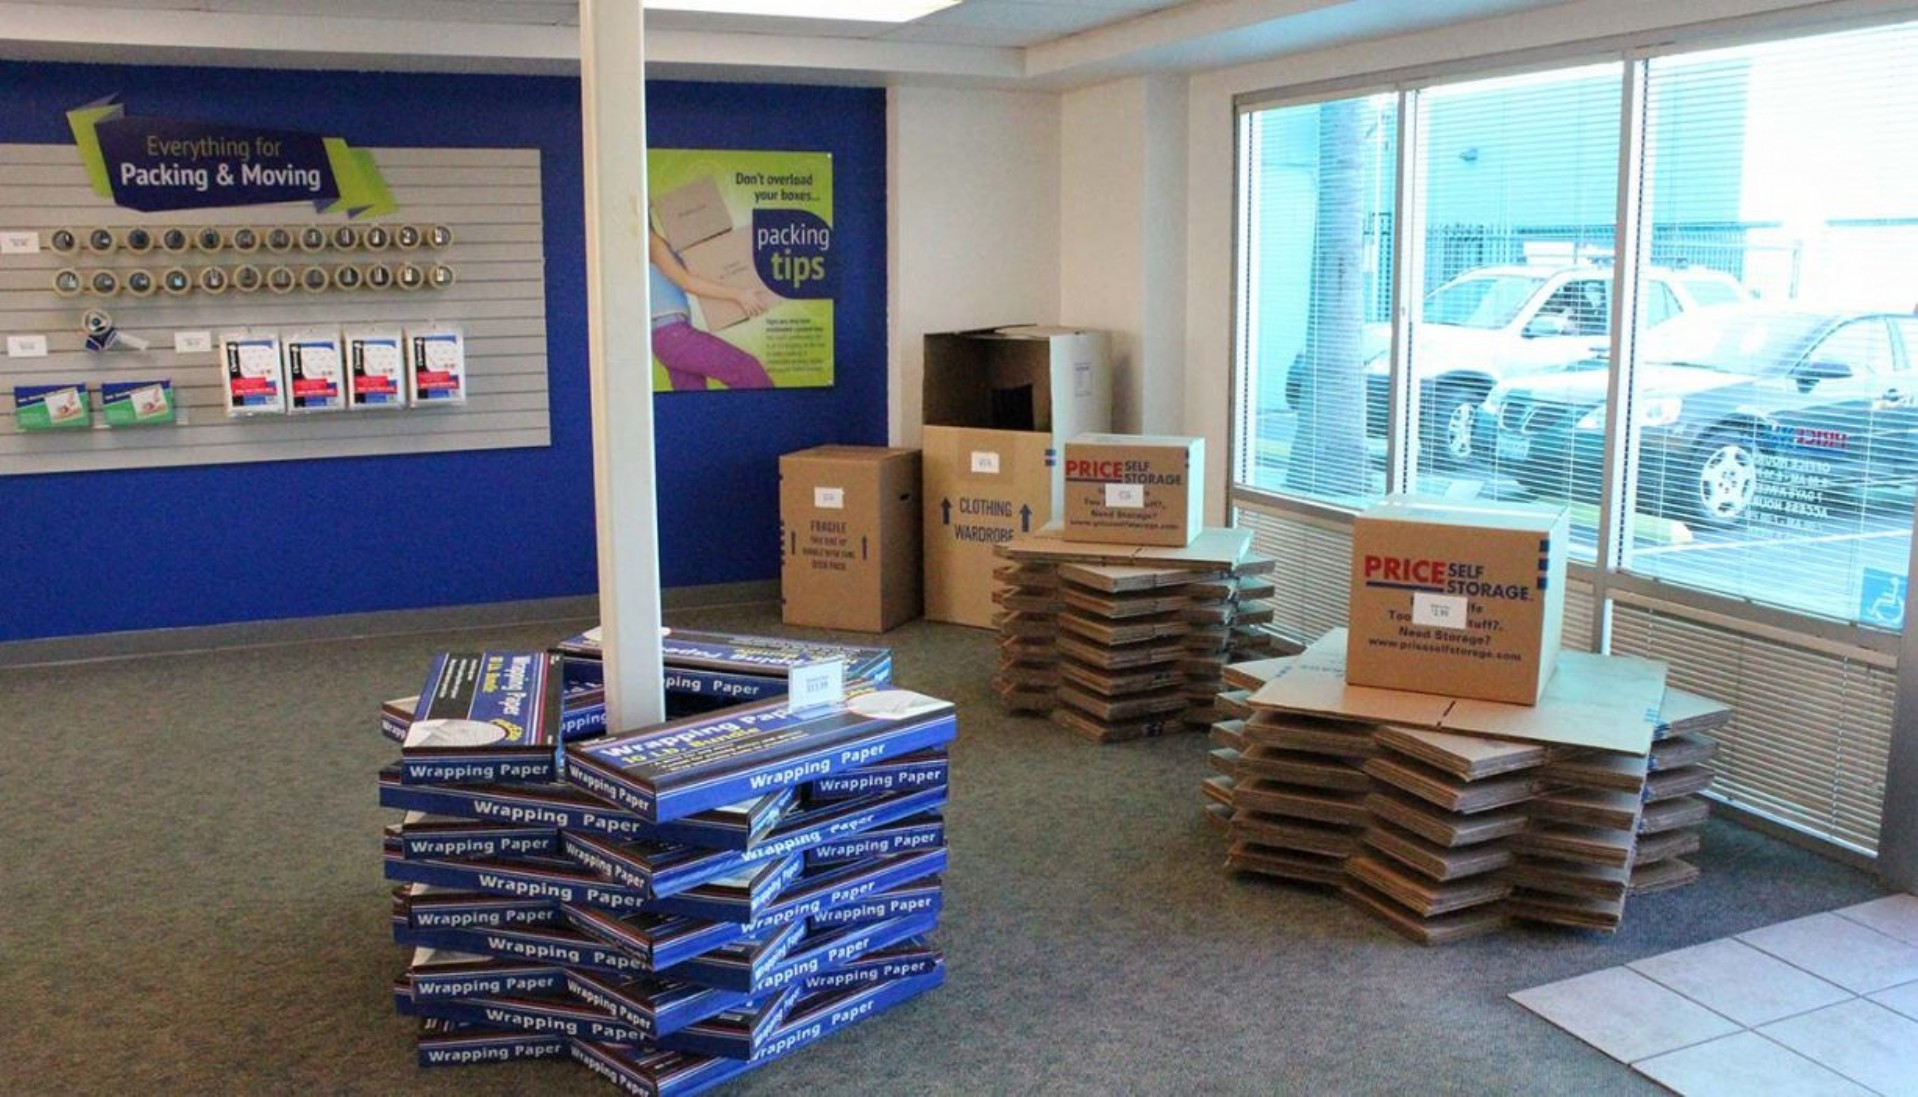 Price Self Storage Pacific Beach rental office with wrapping paper and moving box displays stacked